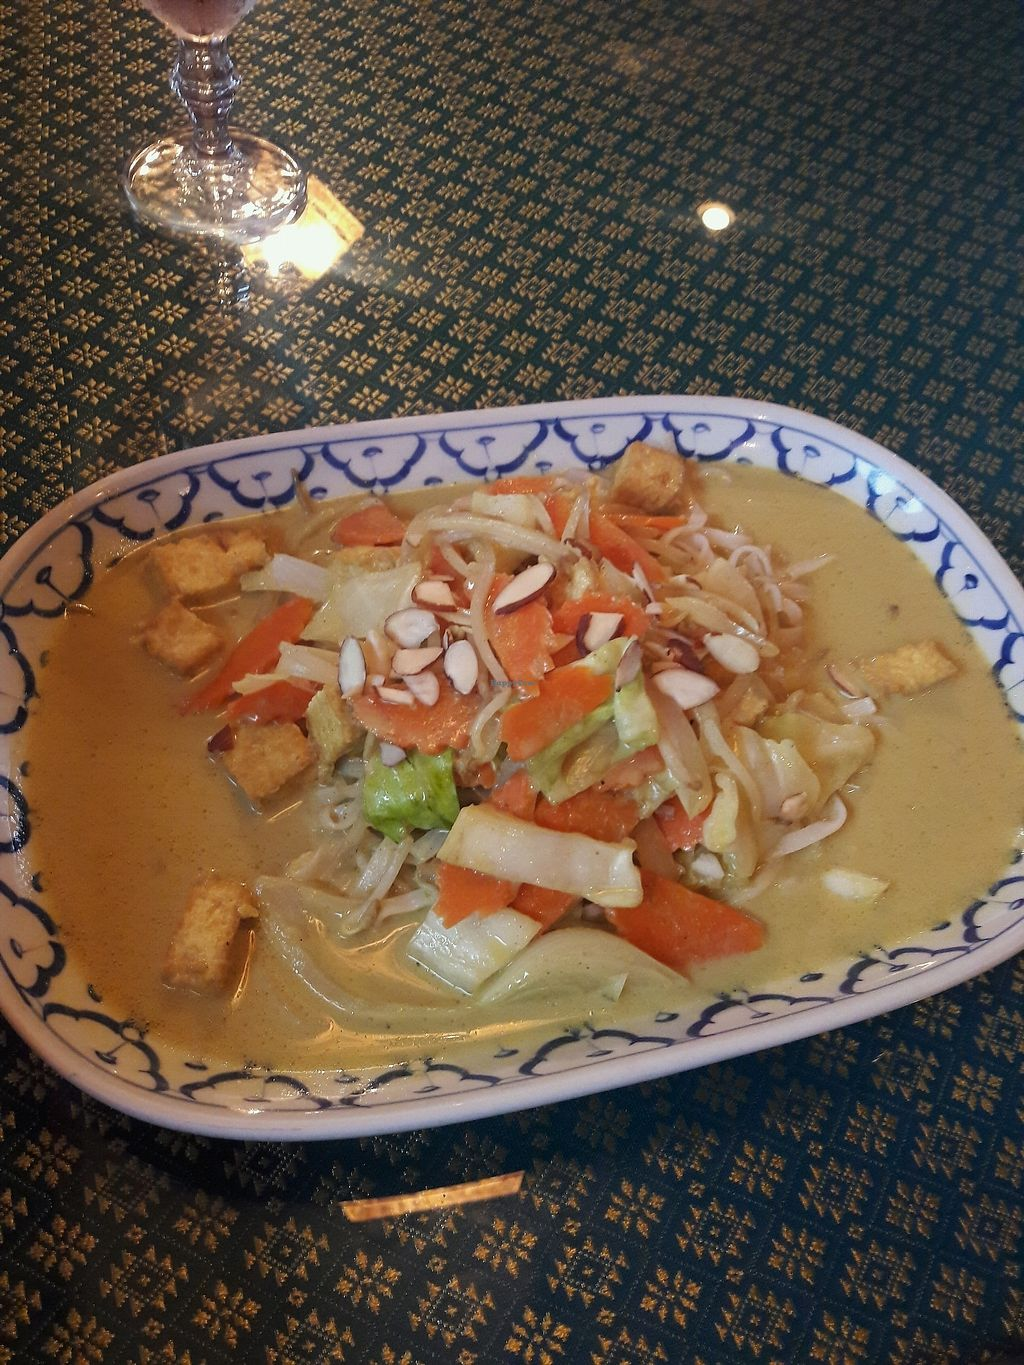 """Photo of Thai Basil II  by <a href=""""/members/profile/GreaterTater"""">GreaterTater</a> <br/>Delicious Khanom Chin <br/> April 10, 2018  - <a href='/contact/abuse/image/72621/383451'>Report</a>"""